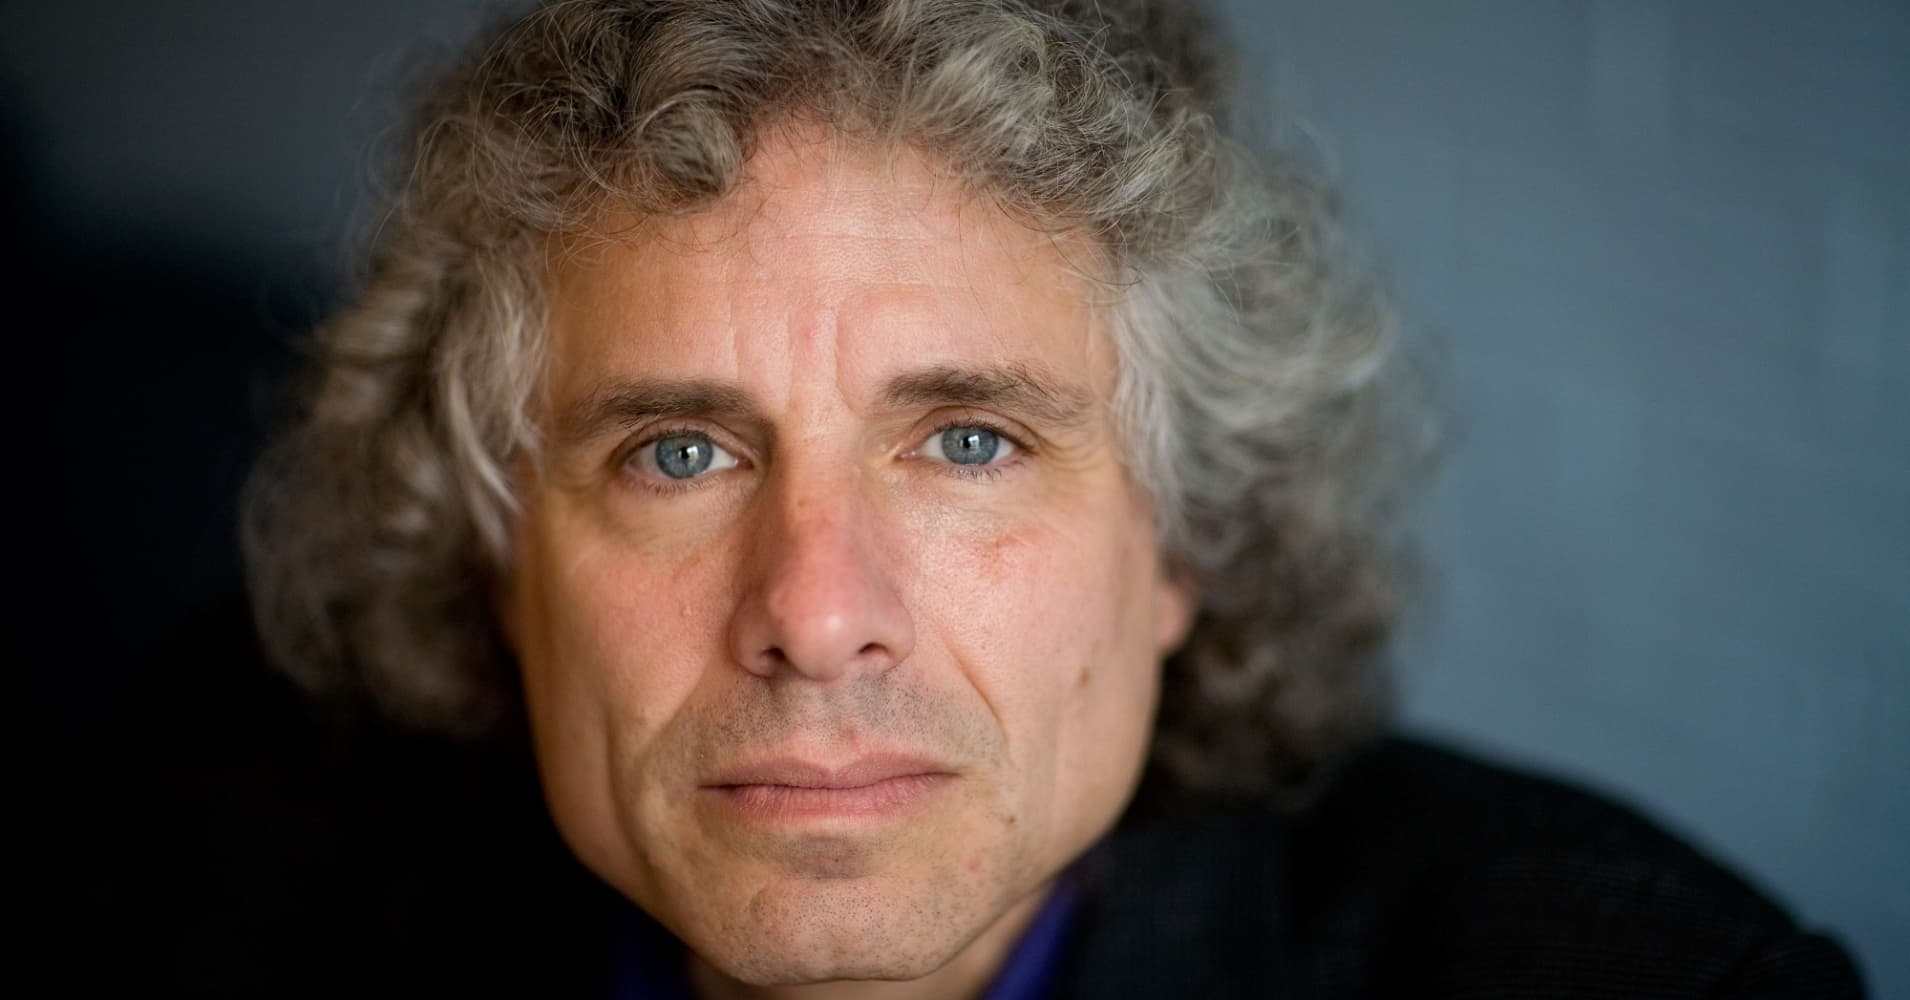 Author and psychologist Steven Pinker